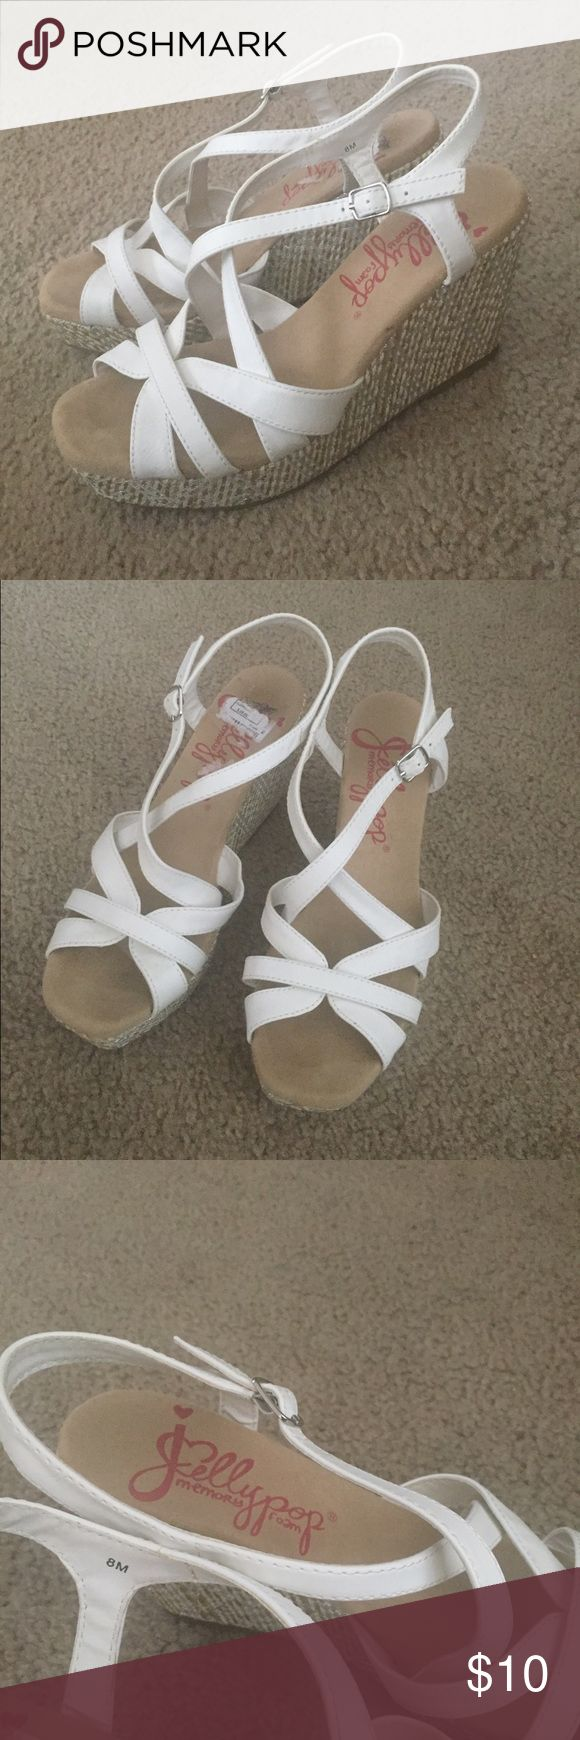 Jellypop white wedge shoes White strappy sandal Size8 wedges by Jellypop (Jelly pop), great condition- worn once Shoes Wedges